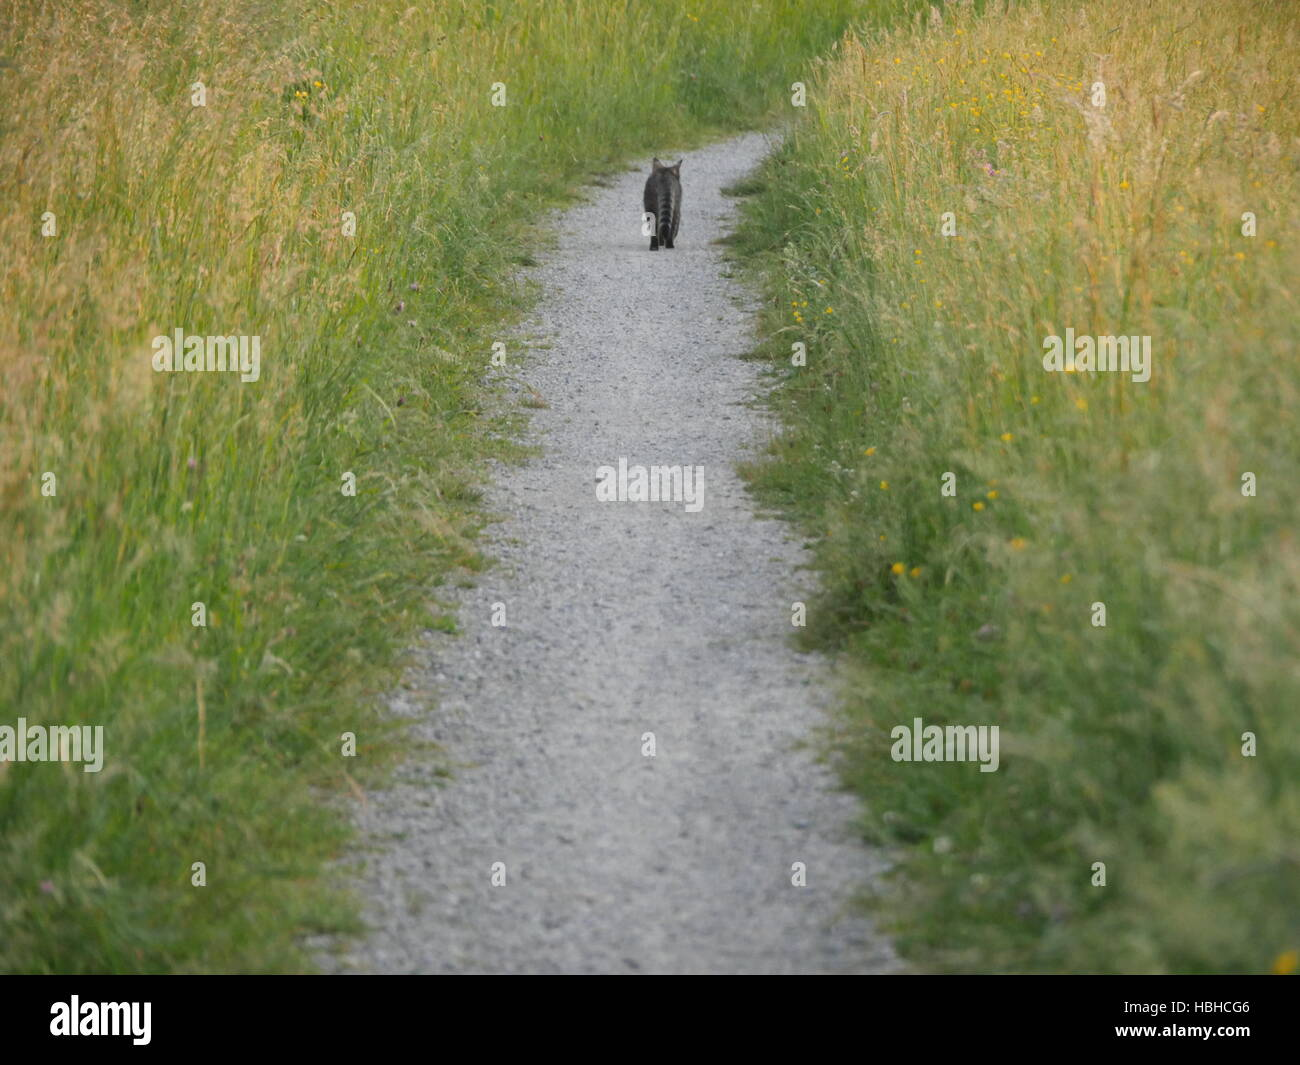 Back view of cat walking down the gravel road - Stock Image